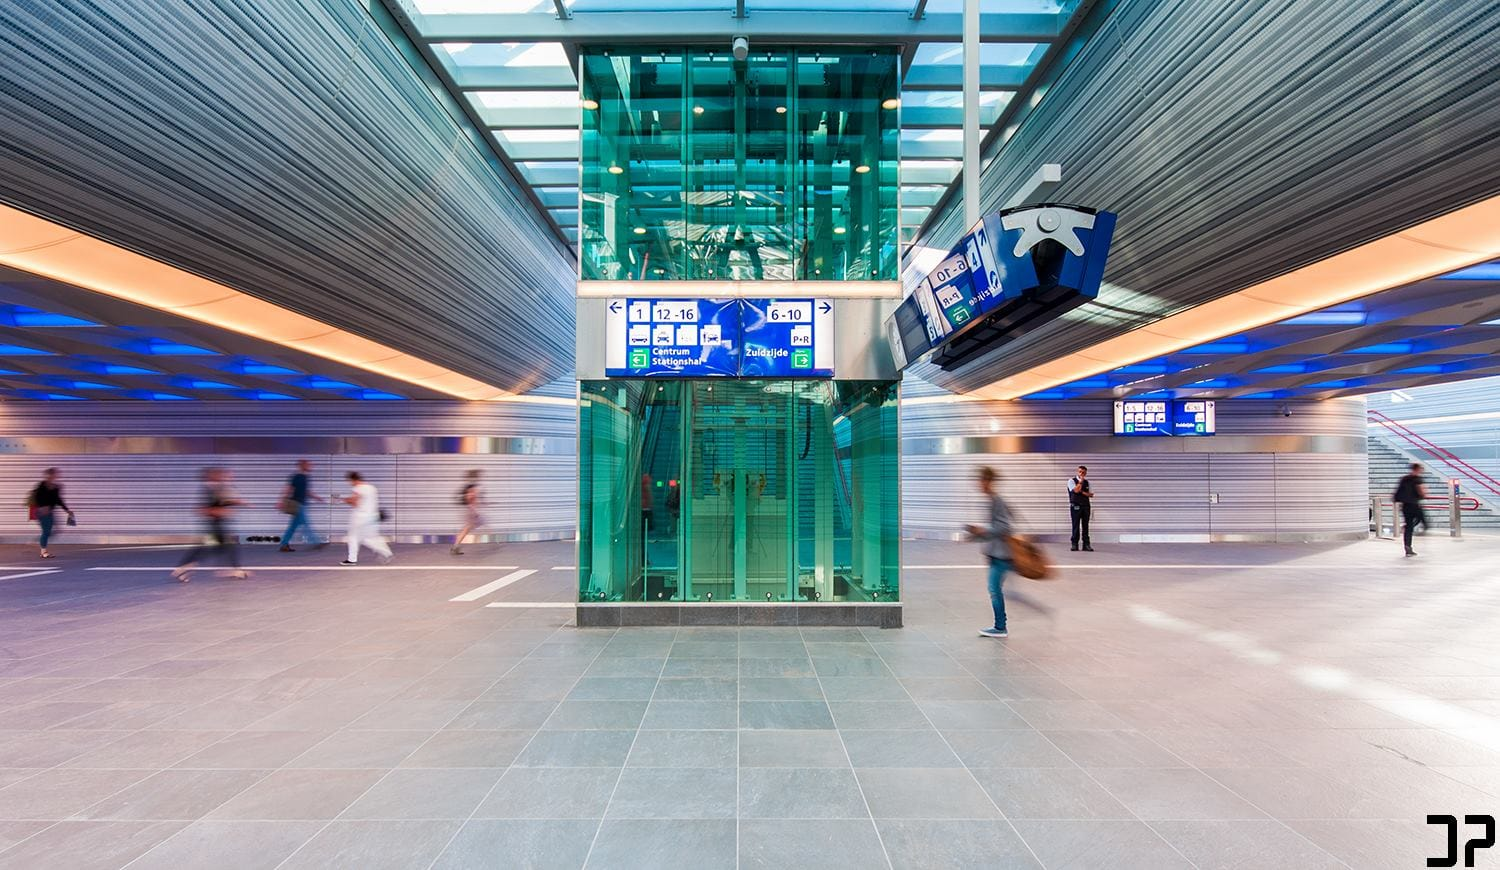 Special: Nieuwe spoortunnel Station Zwolle